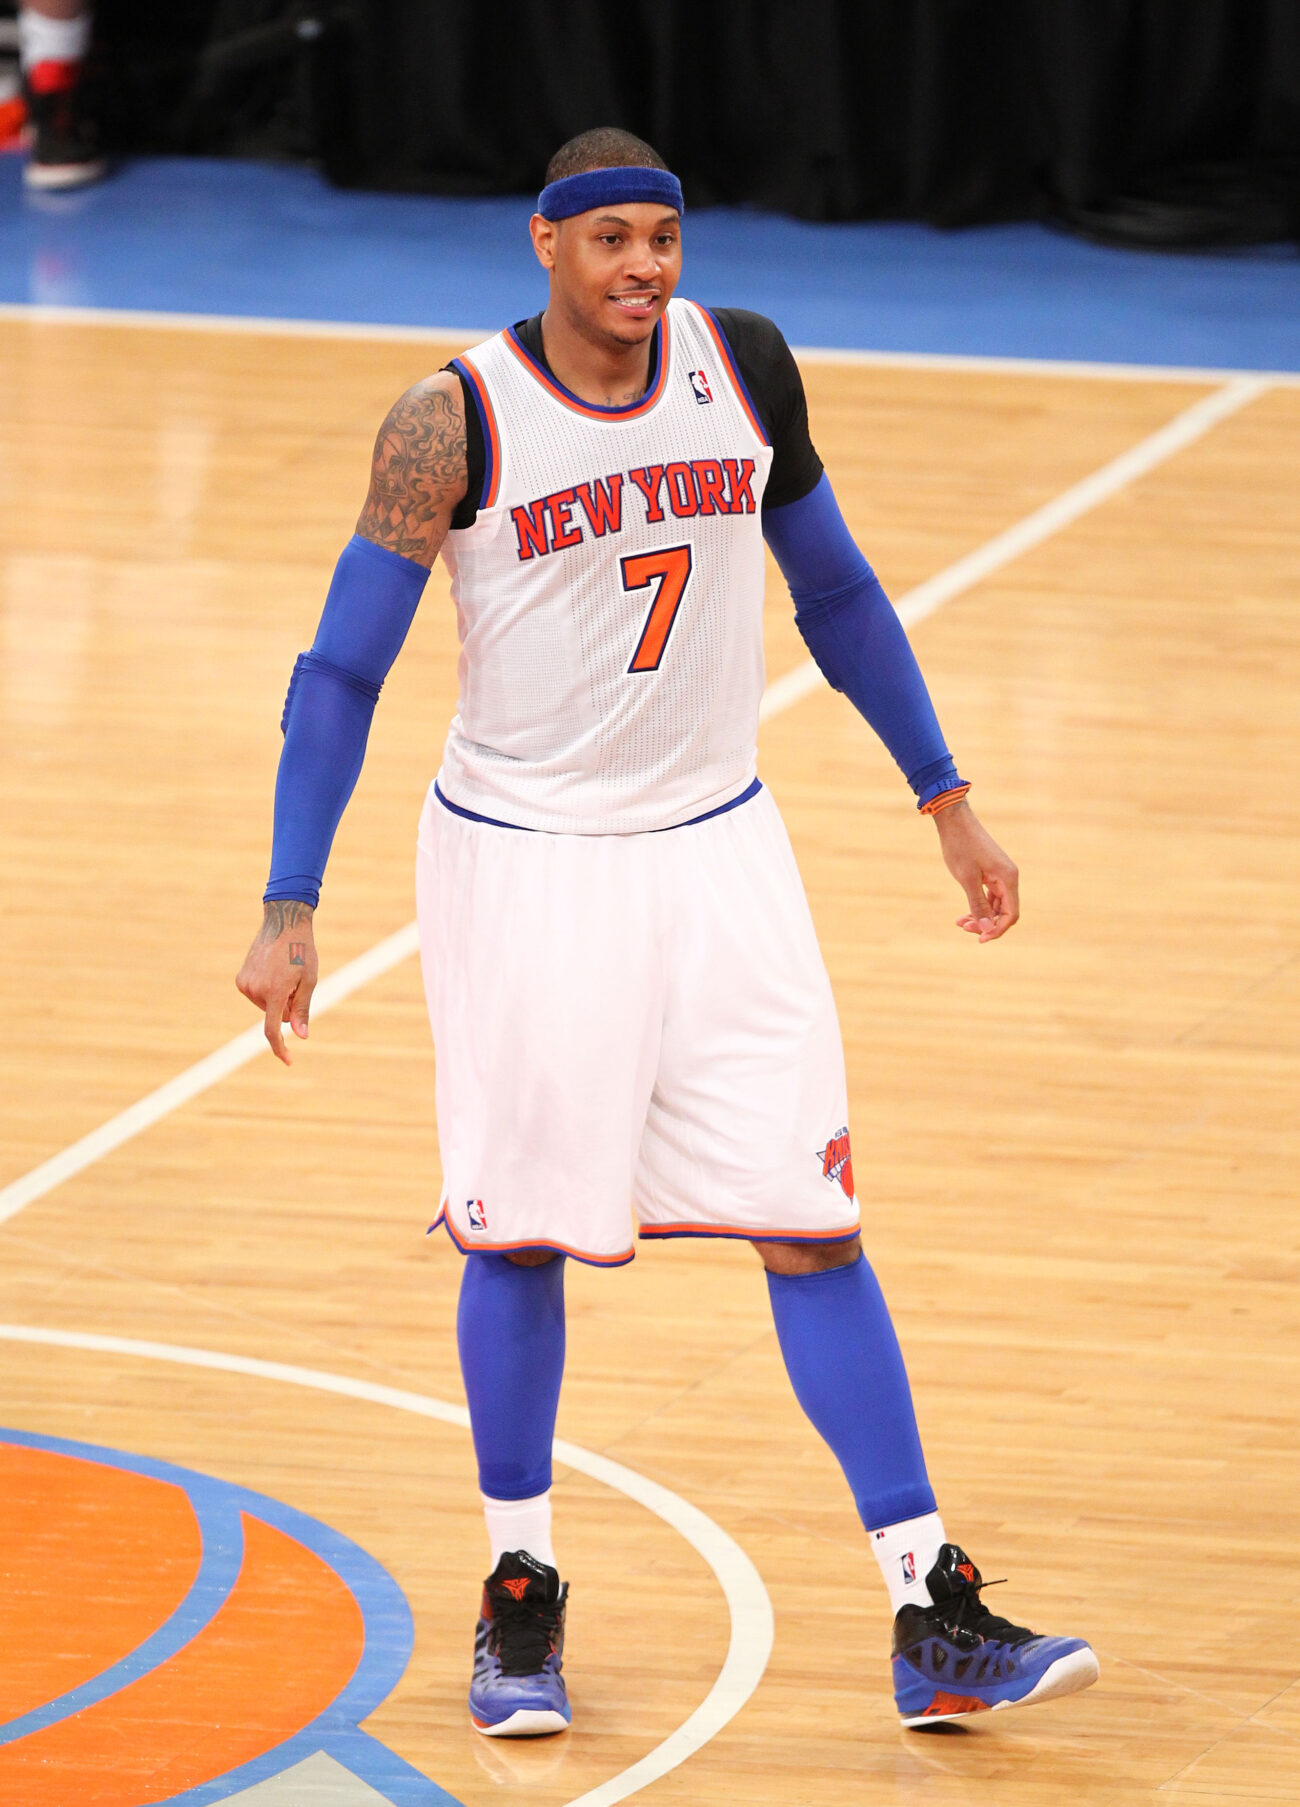 May 5, 2013; New York, NY, USA; New York Knicks forward Carmelo Anthony (7) smiles during the second half against the Indiana Pacers at Madison Square Garden. Mandatory Credit: Danny Wild-USA TODAY Sports